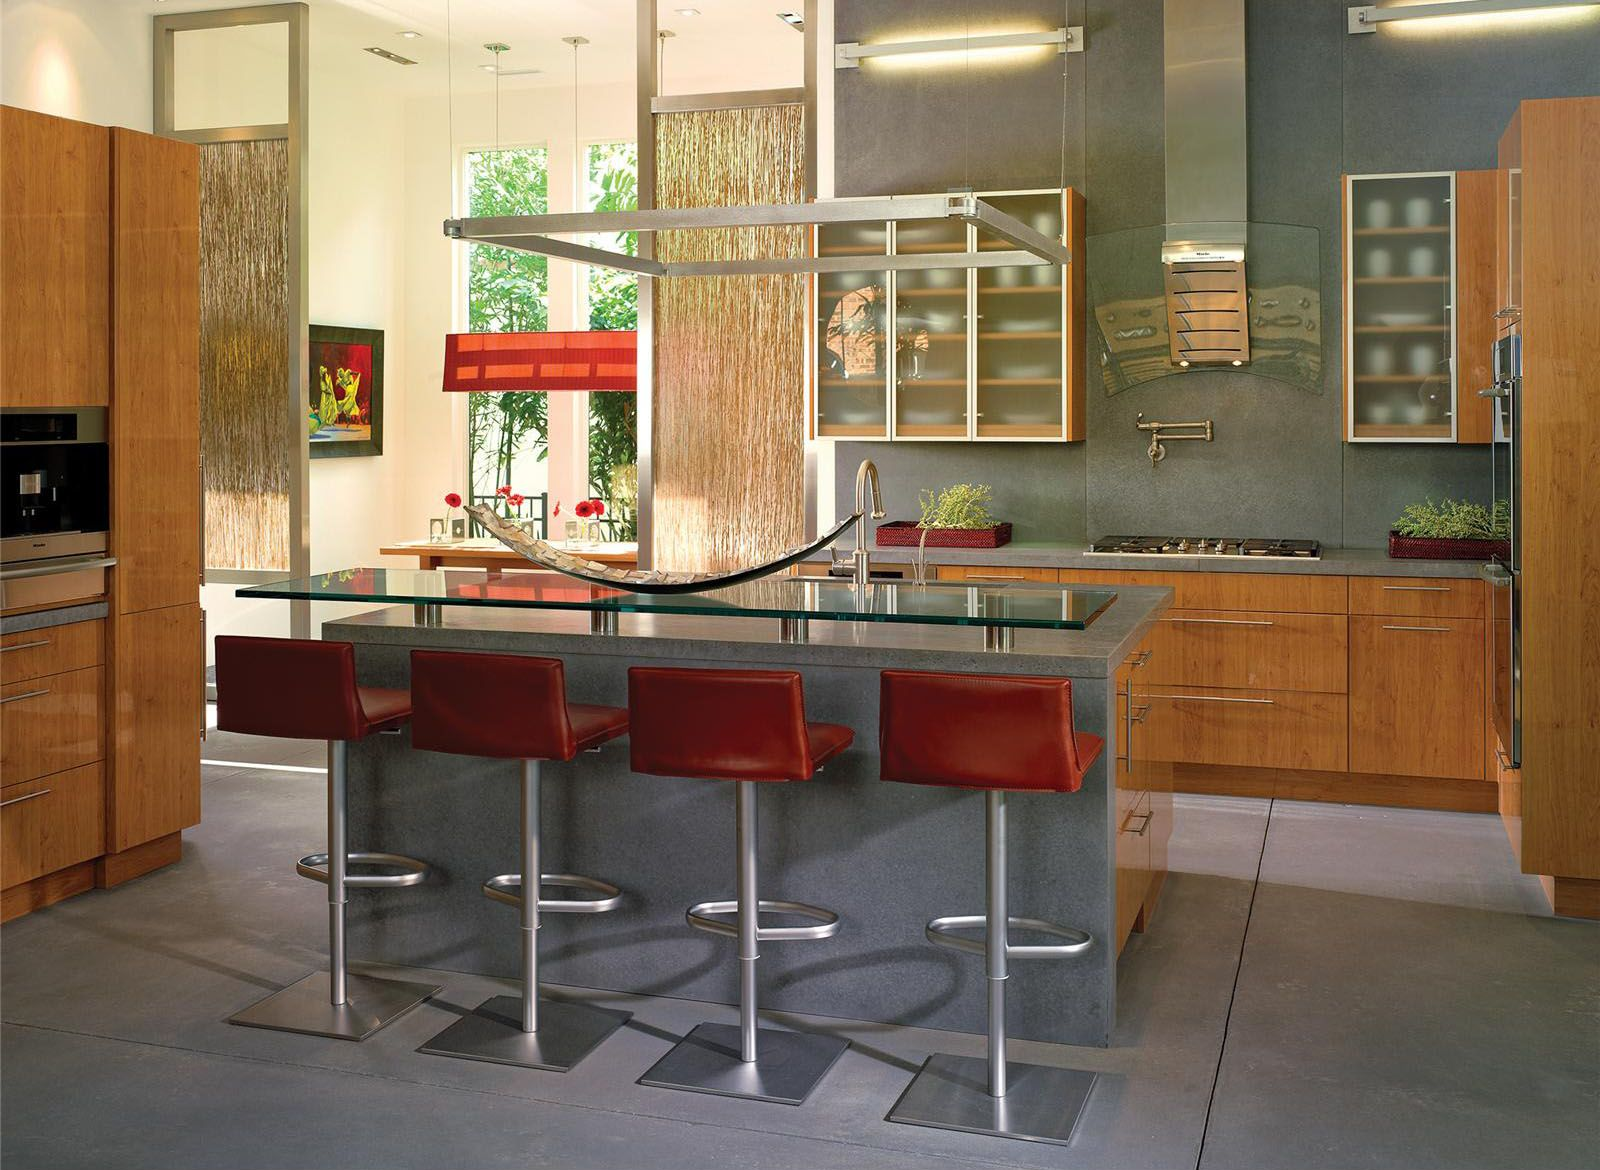 Dashing Kitchen Island With Stools For Comfortable Seating Http Www Ruchidesigns